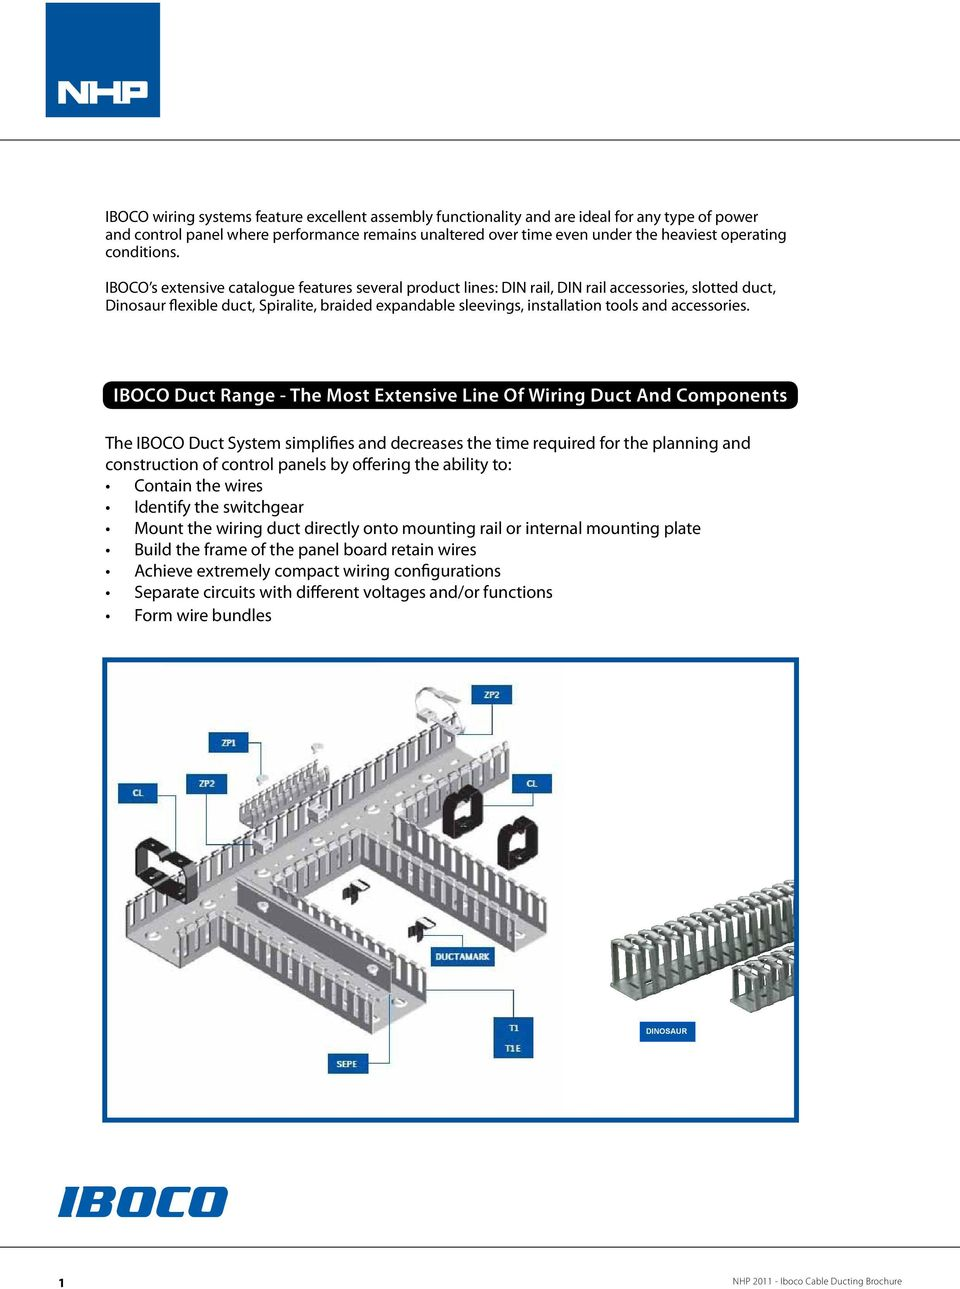 Iboco Cable Ducting An Integrated System Of Wiring Duct And Open Slot S Extensive Catalogue Features Several Product Lines Din Rail Accessories